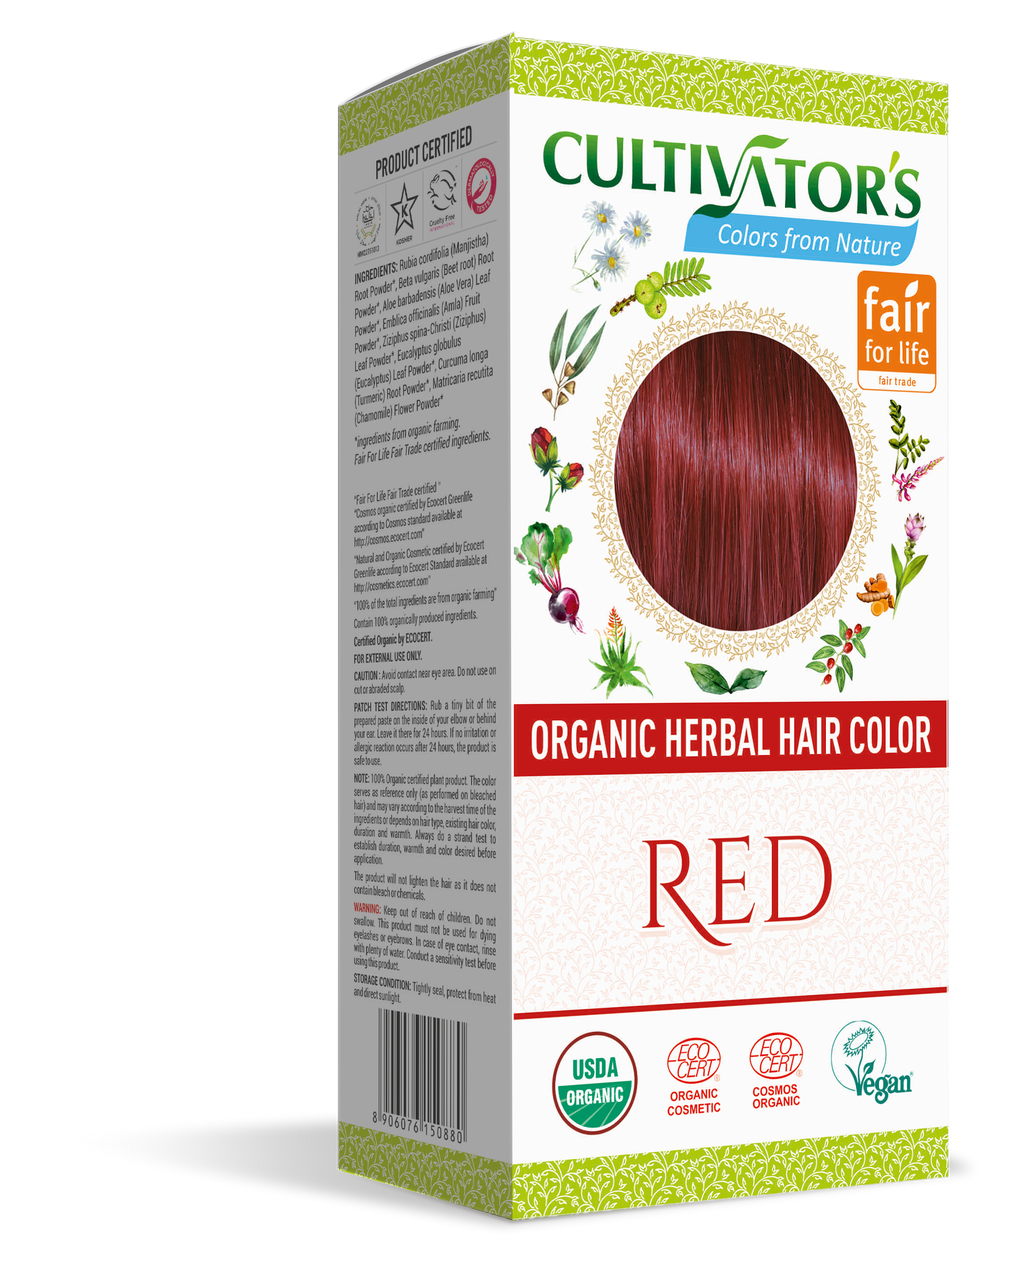 ORGANIC HERBAL HAIR COLOR RED